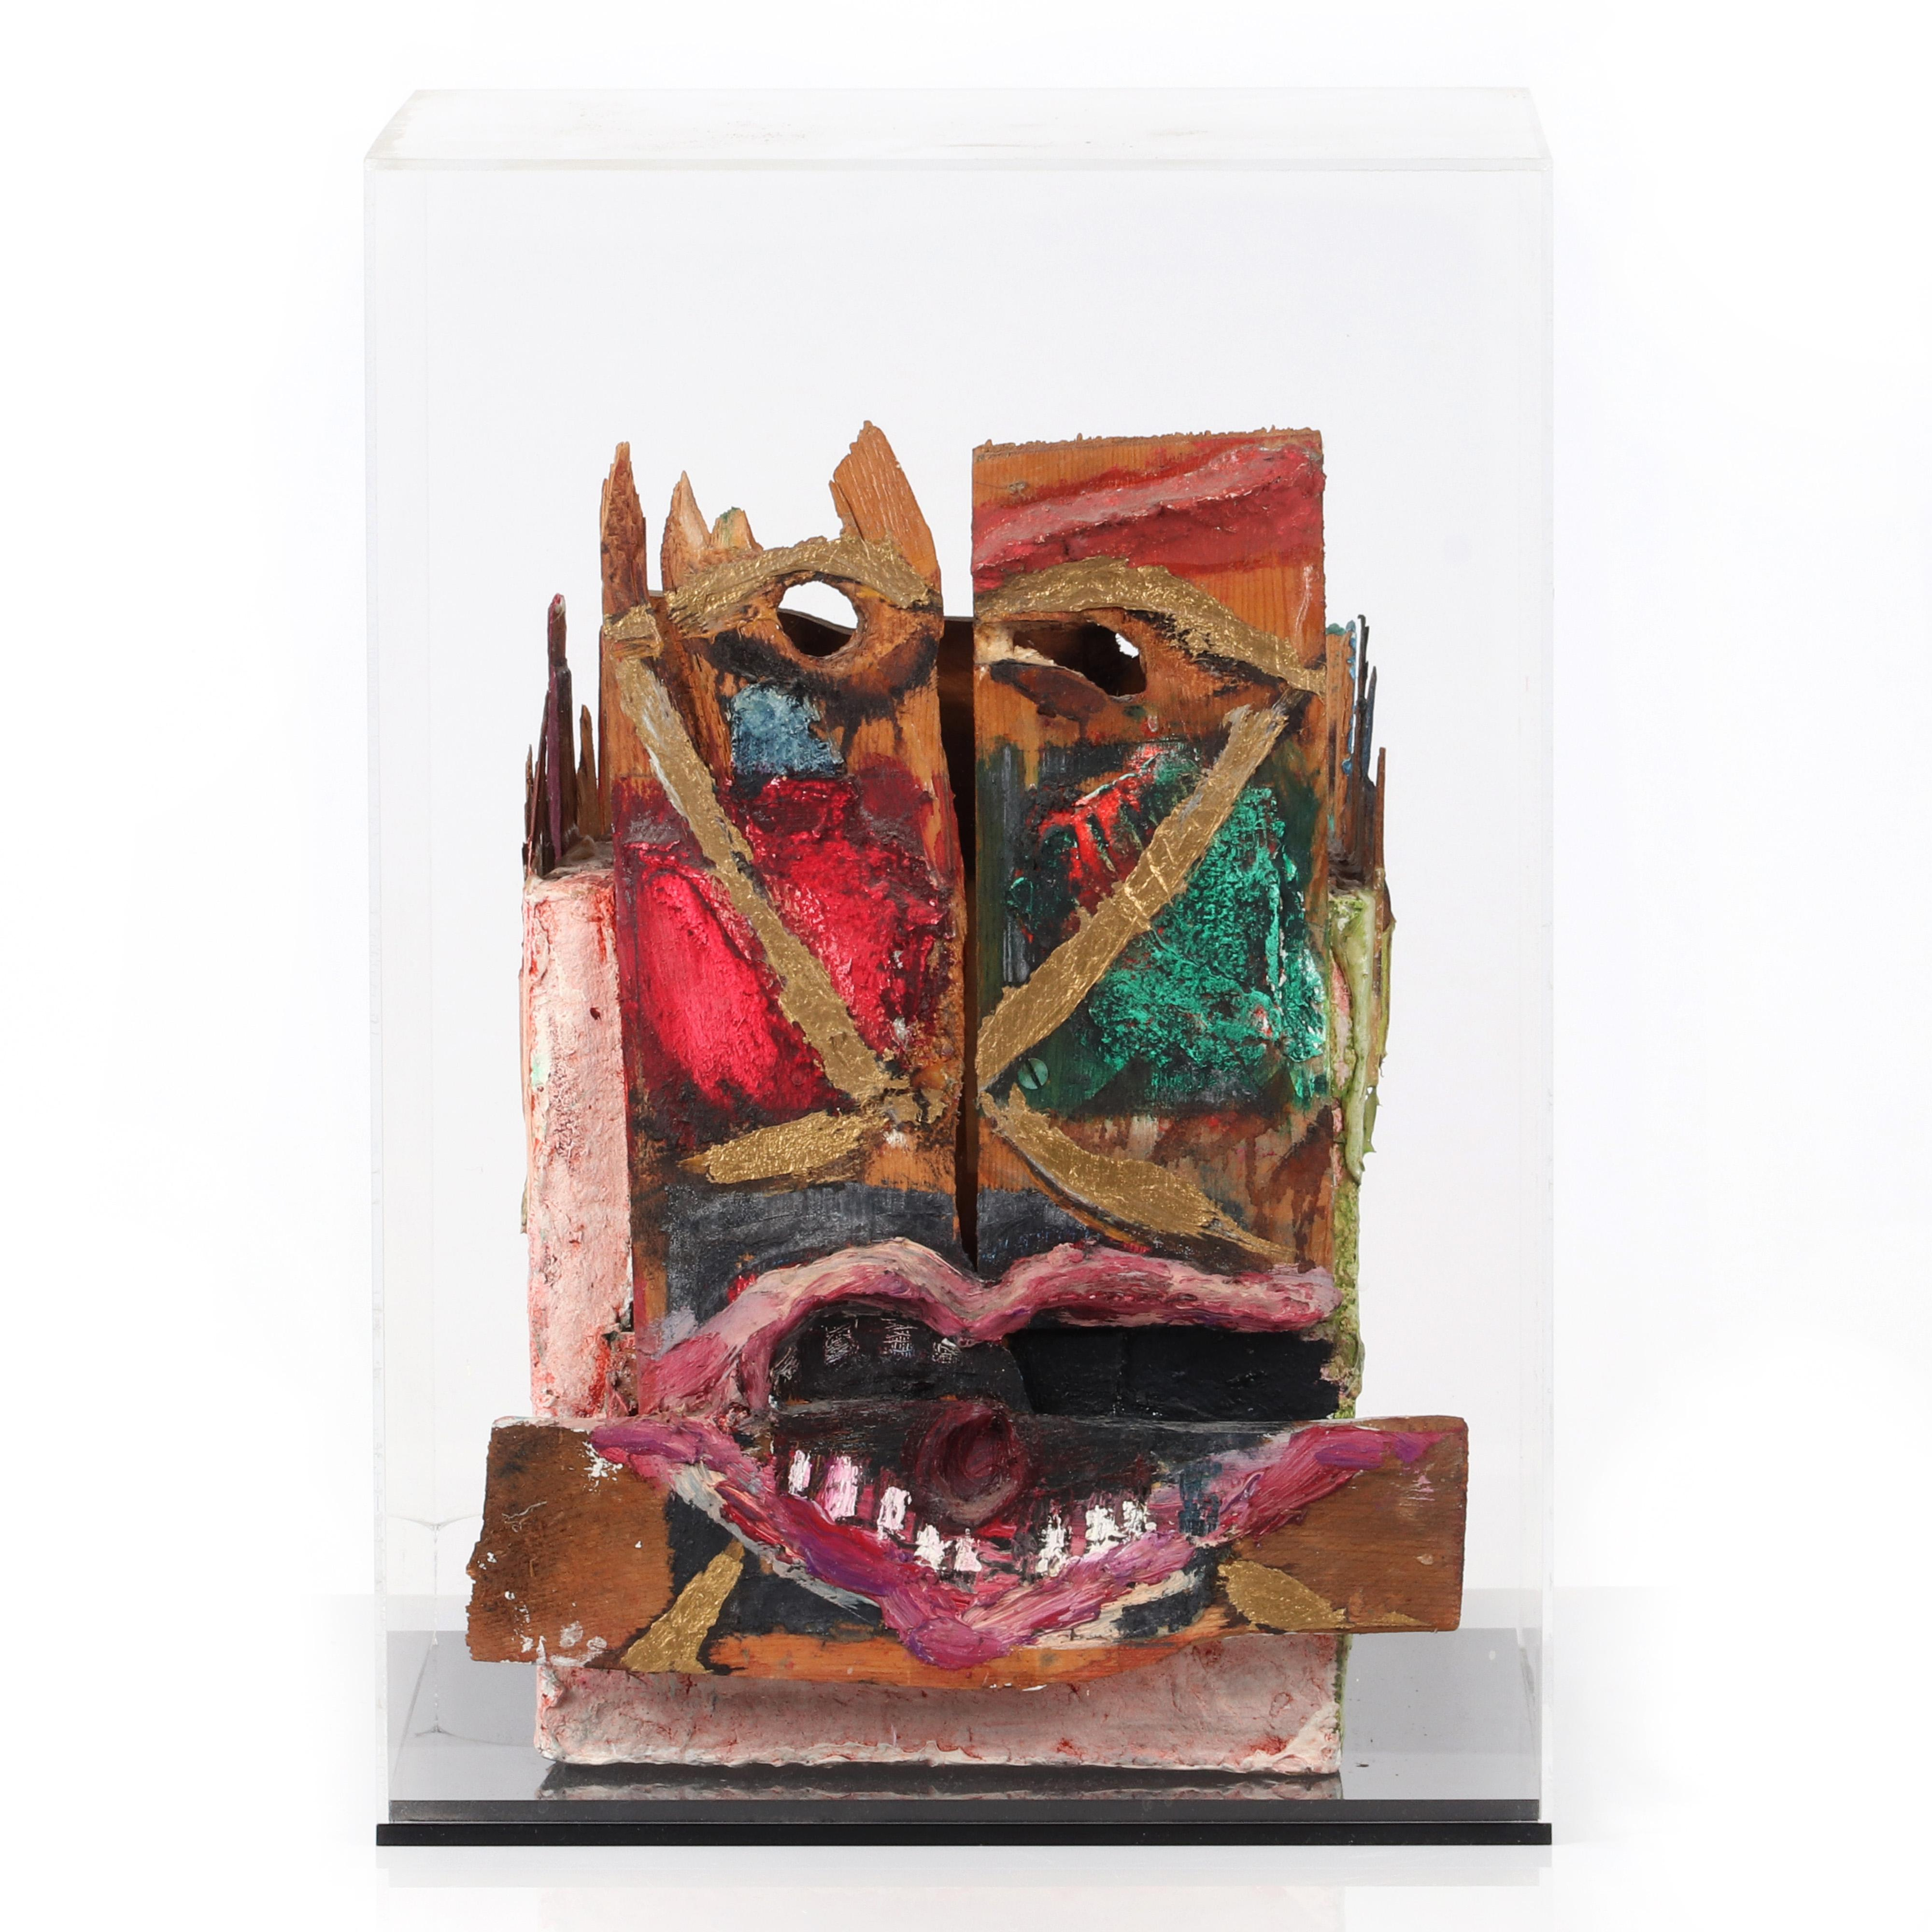 """Joan Snyder, (American, b.1943), abstract bust, sculpture for the New Museum, 1981, mixed media, found wood and cardboard, 14""""H x 10""""W x 11""""D (without acrylic box)."""